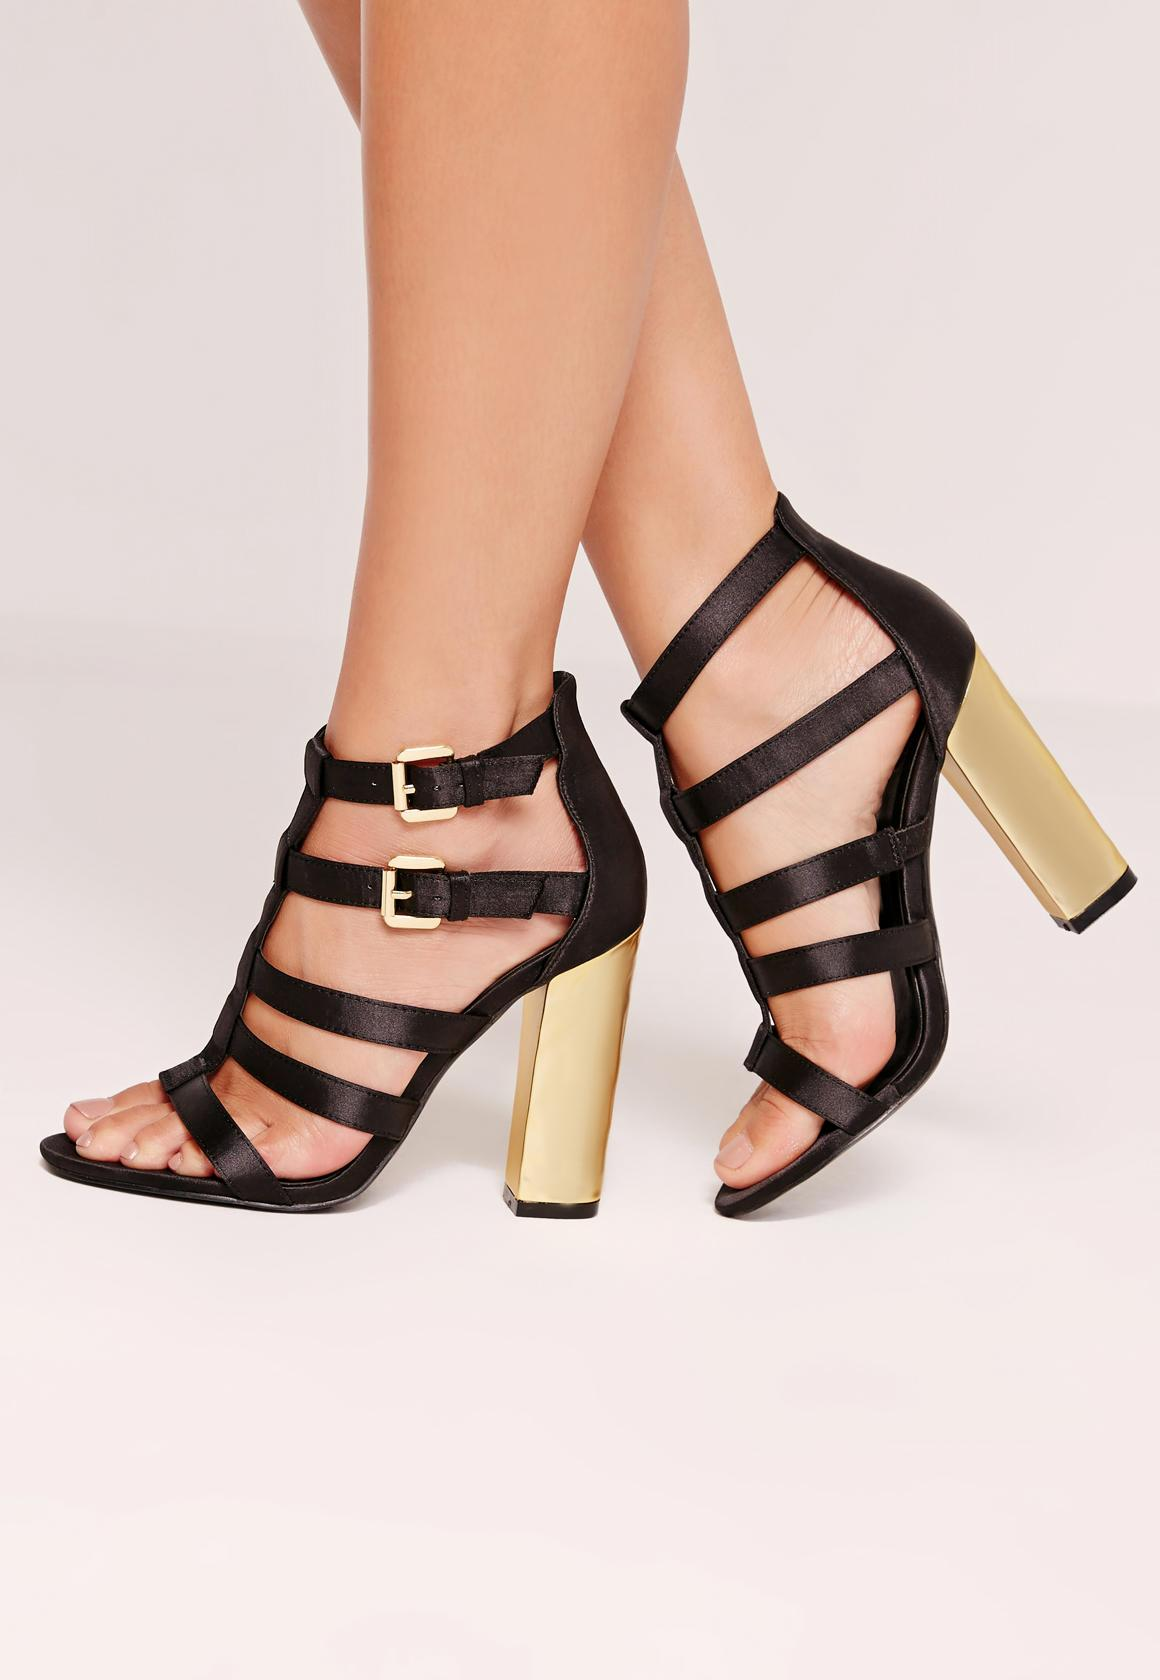 Crushed Heel Satin Gladiator Block Heels Black